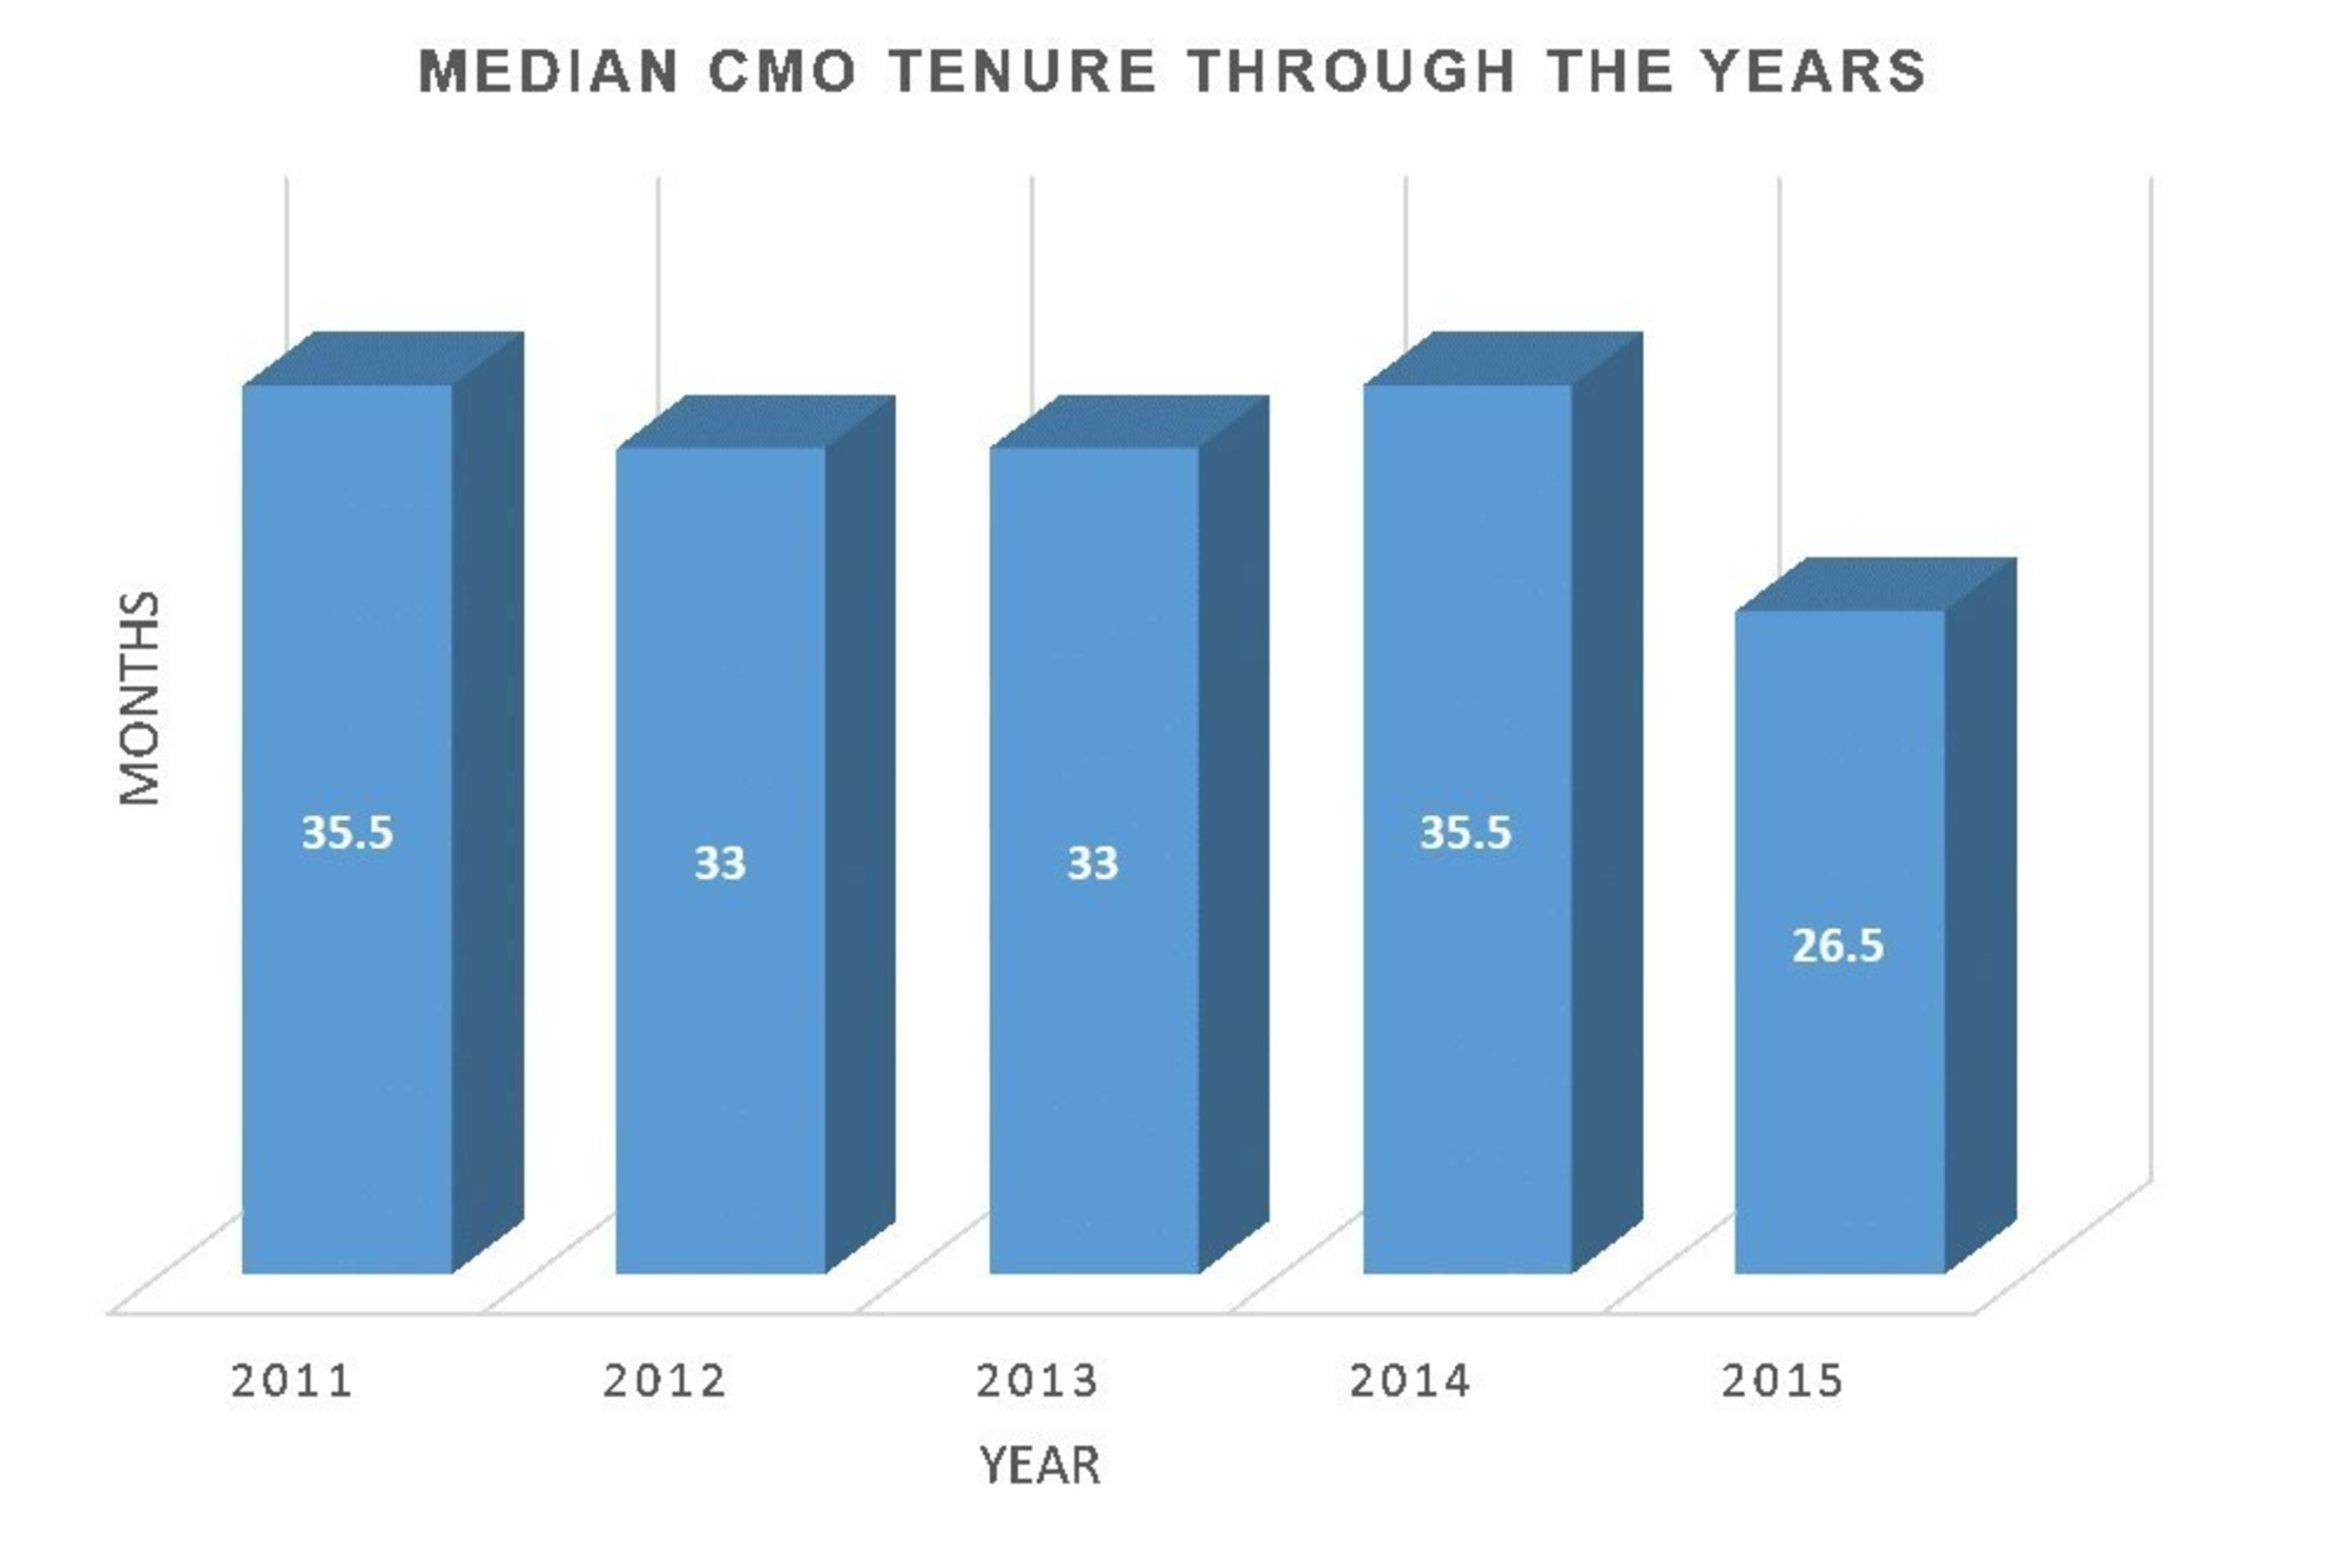 MEDIAN CMO TENURE THROUGH THE YEARS